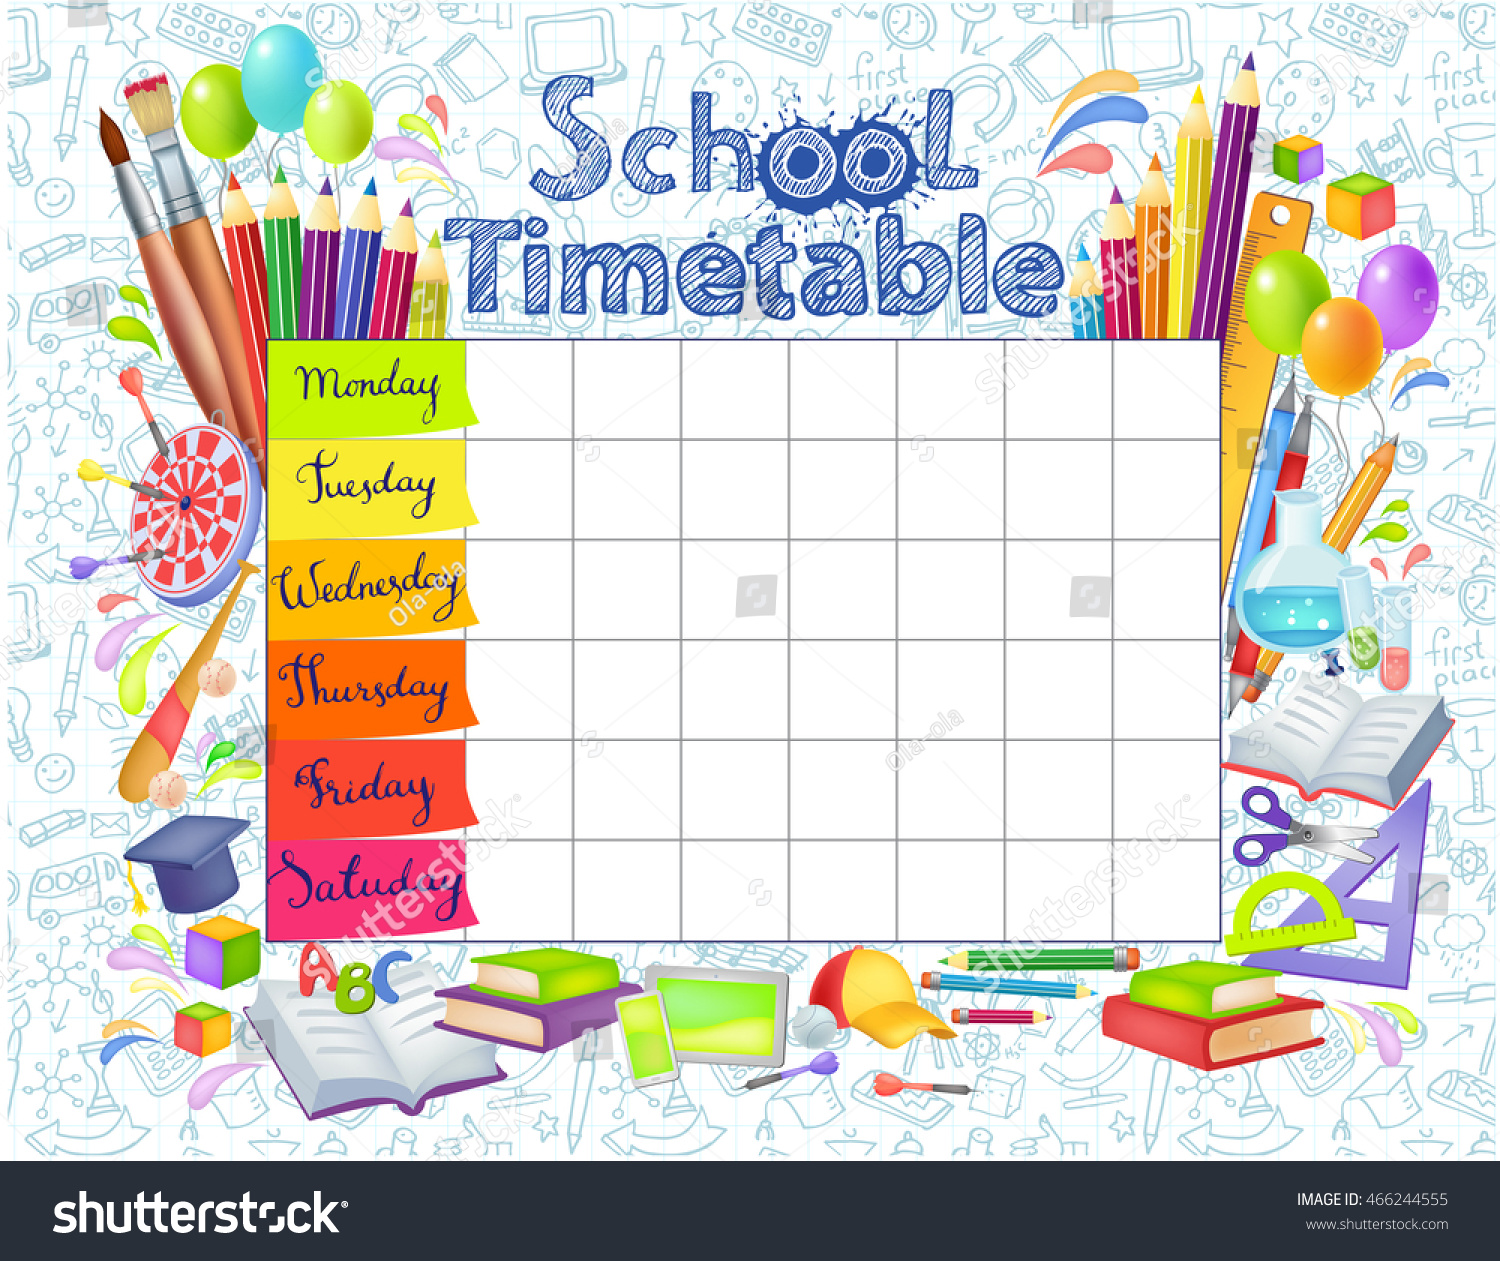 Quotes On School Time Table: Template School Timetable Students Pupils Days 스톡 벡터